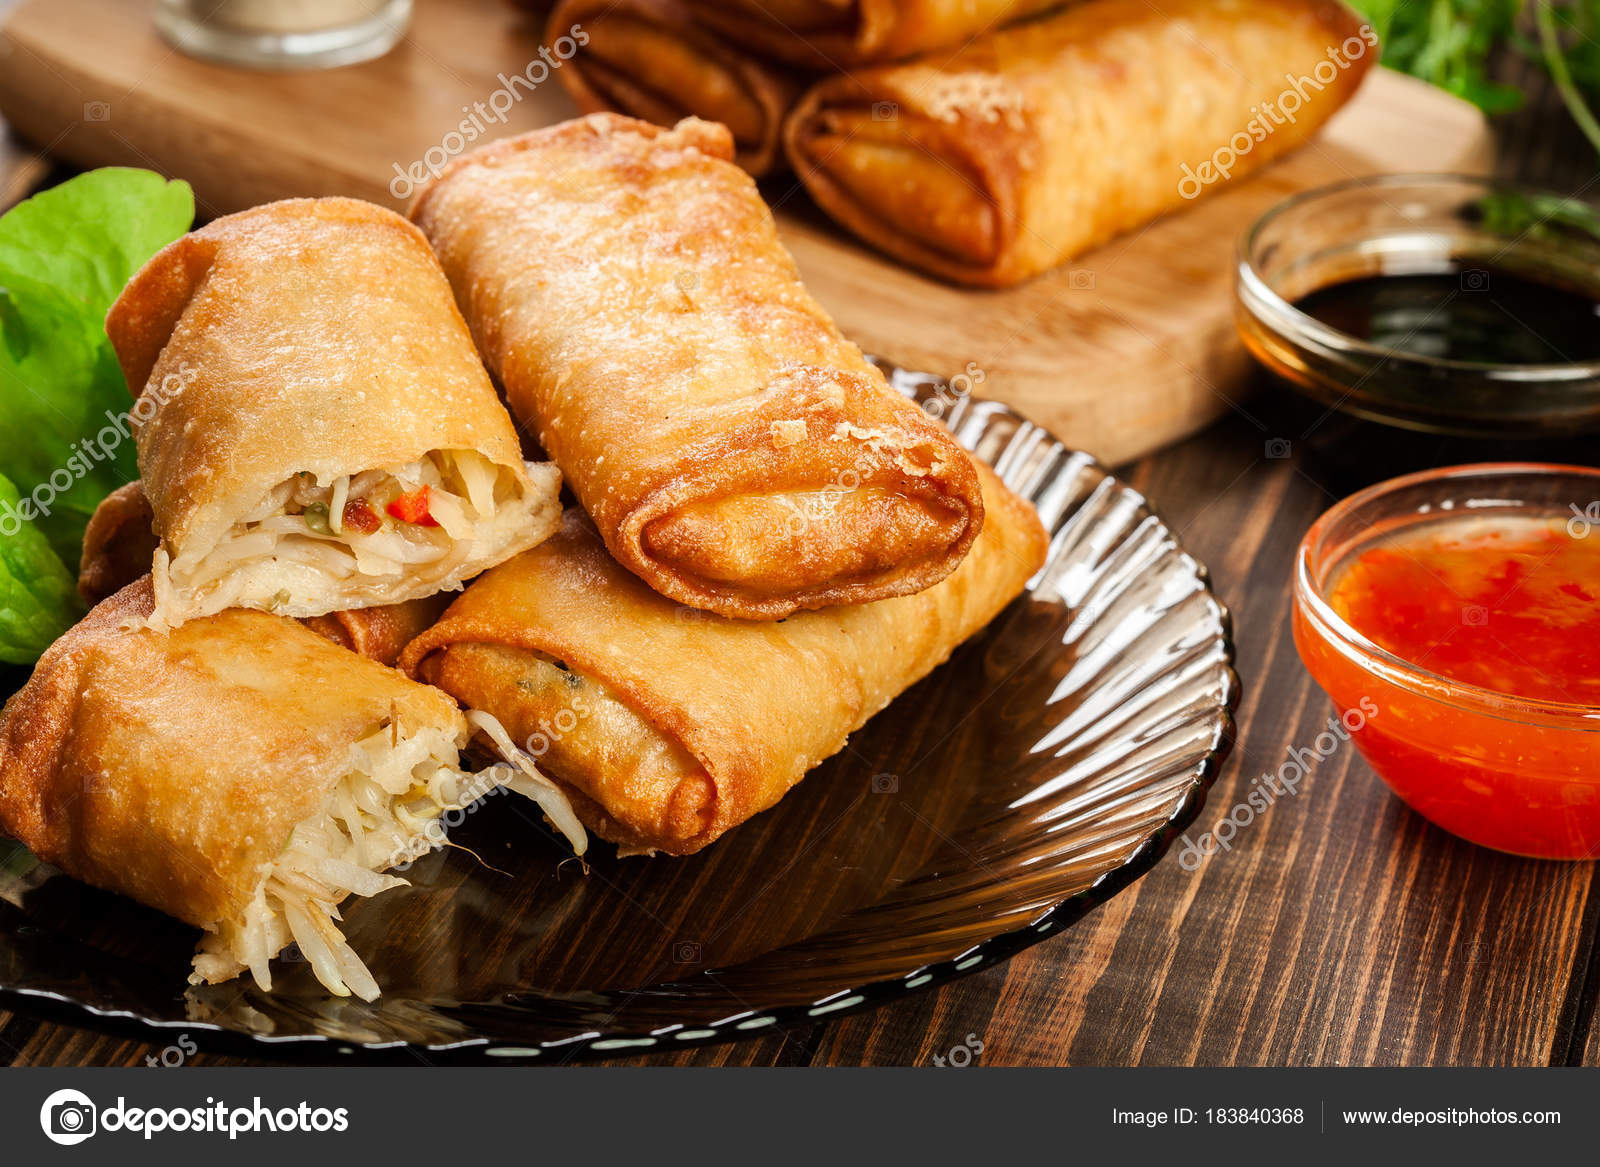 Spring Rolls With Chicken And Vegetables Served With Sweet Chili Sauce Or Soy Sauce Stock Photo Image By C Fotek 183840368